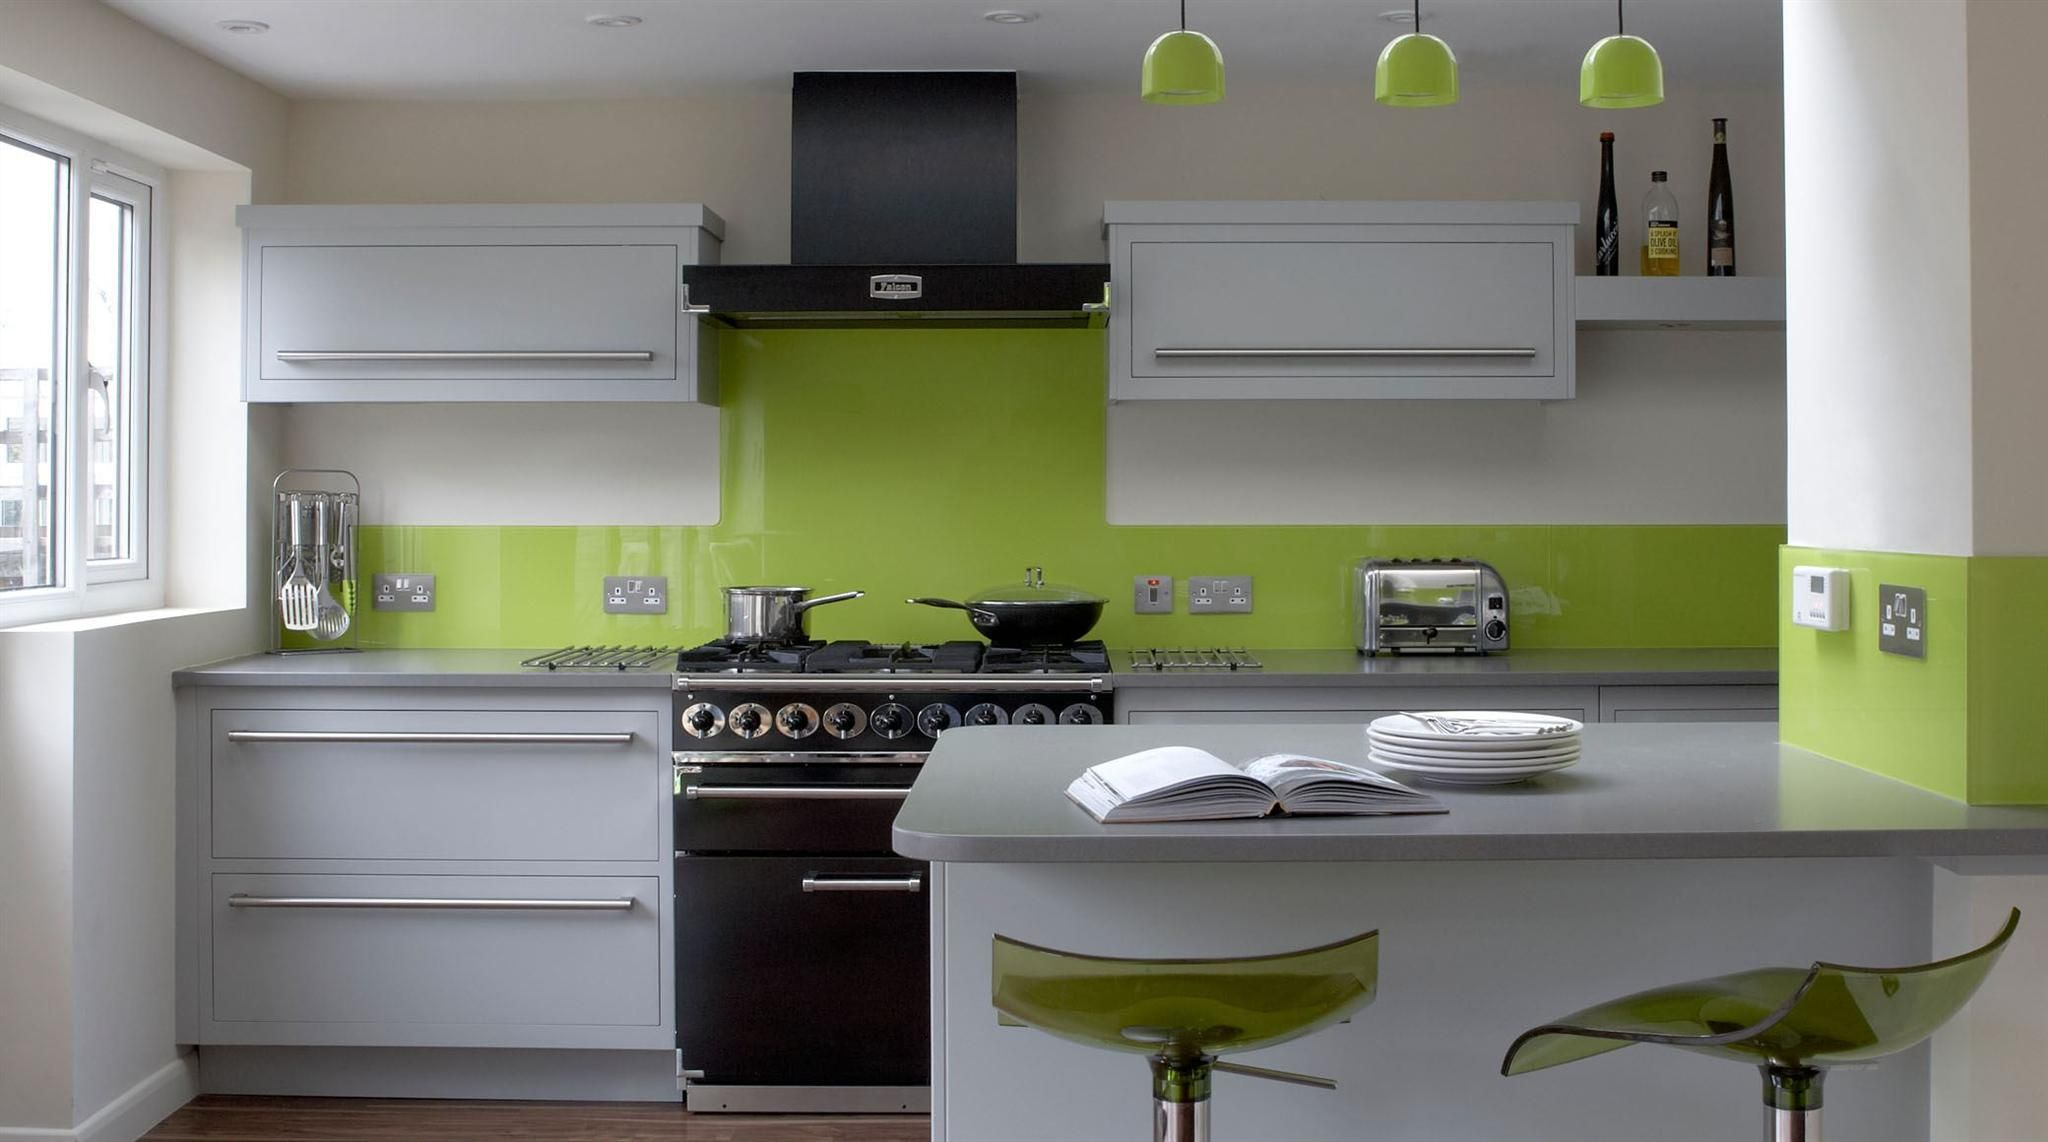 Linear Kitchen With Lime Green Splashback Kitchen Ideas Pinterest Splashback Kitchens And